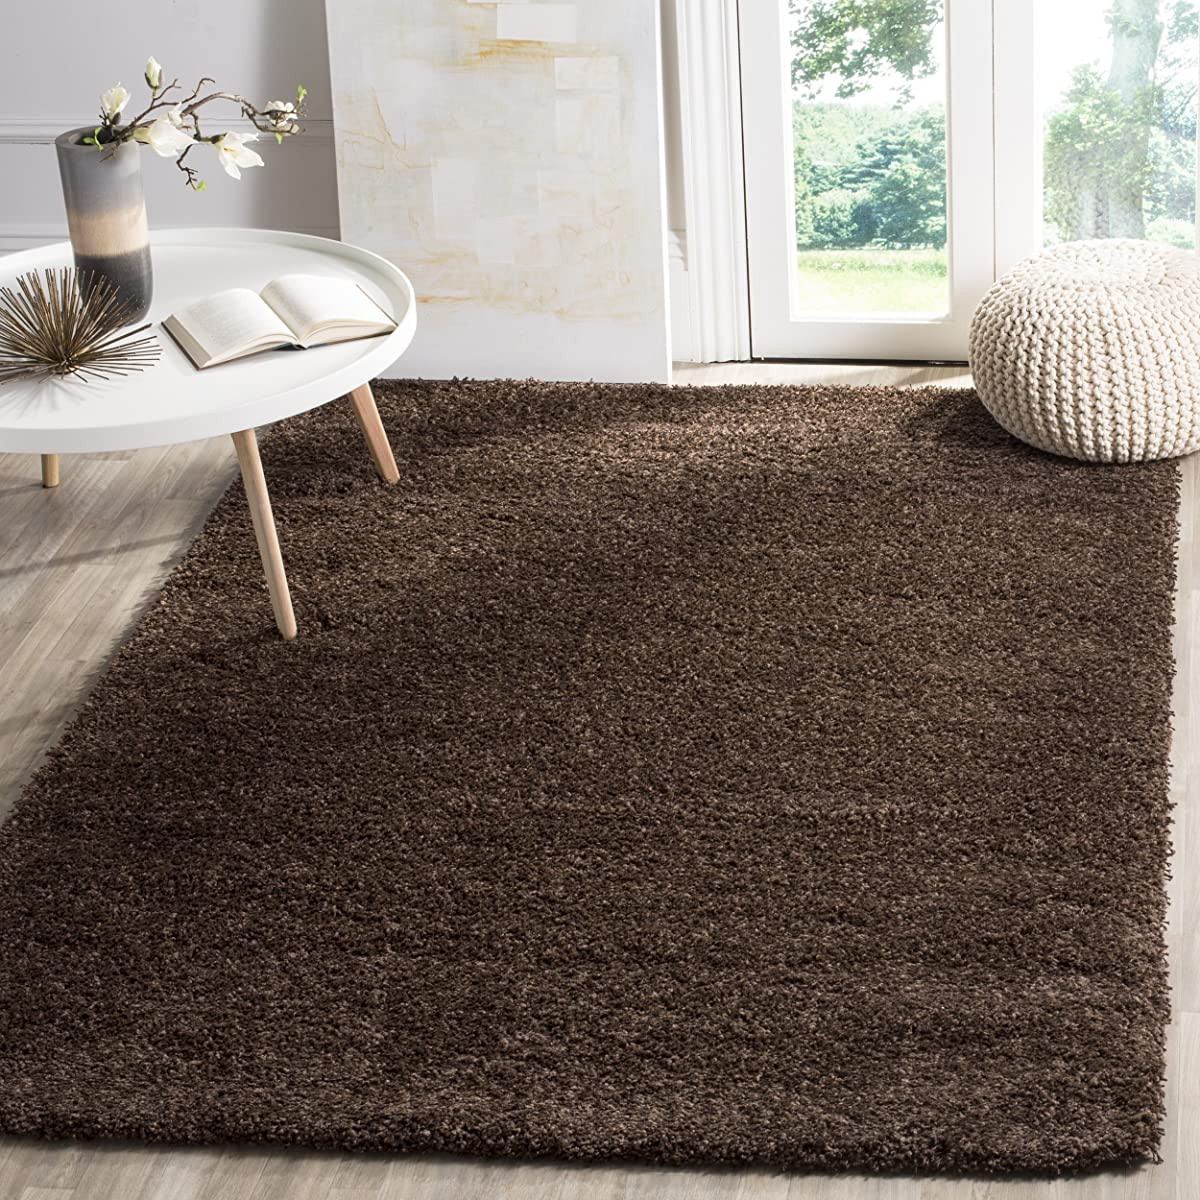 Safavieh California Premium Shag Collection SG151-2727 Brown Area Rug (4 x 6)